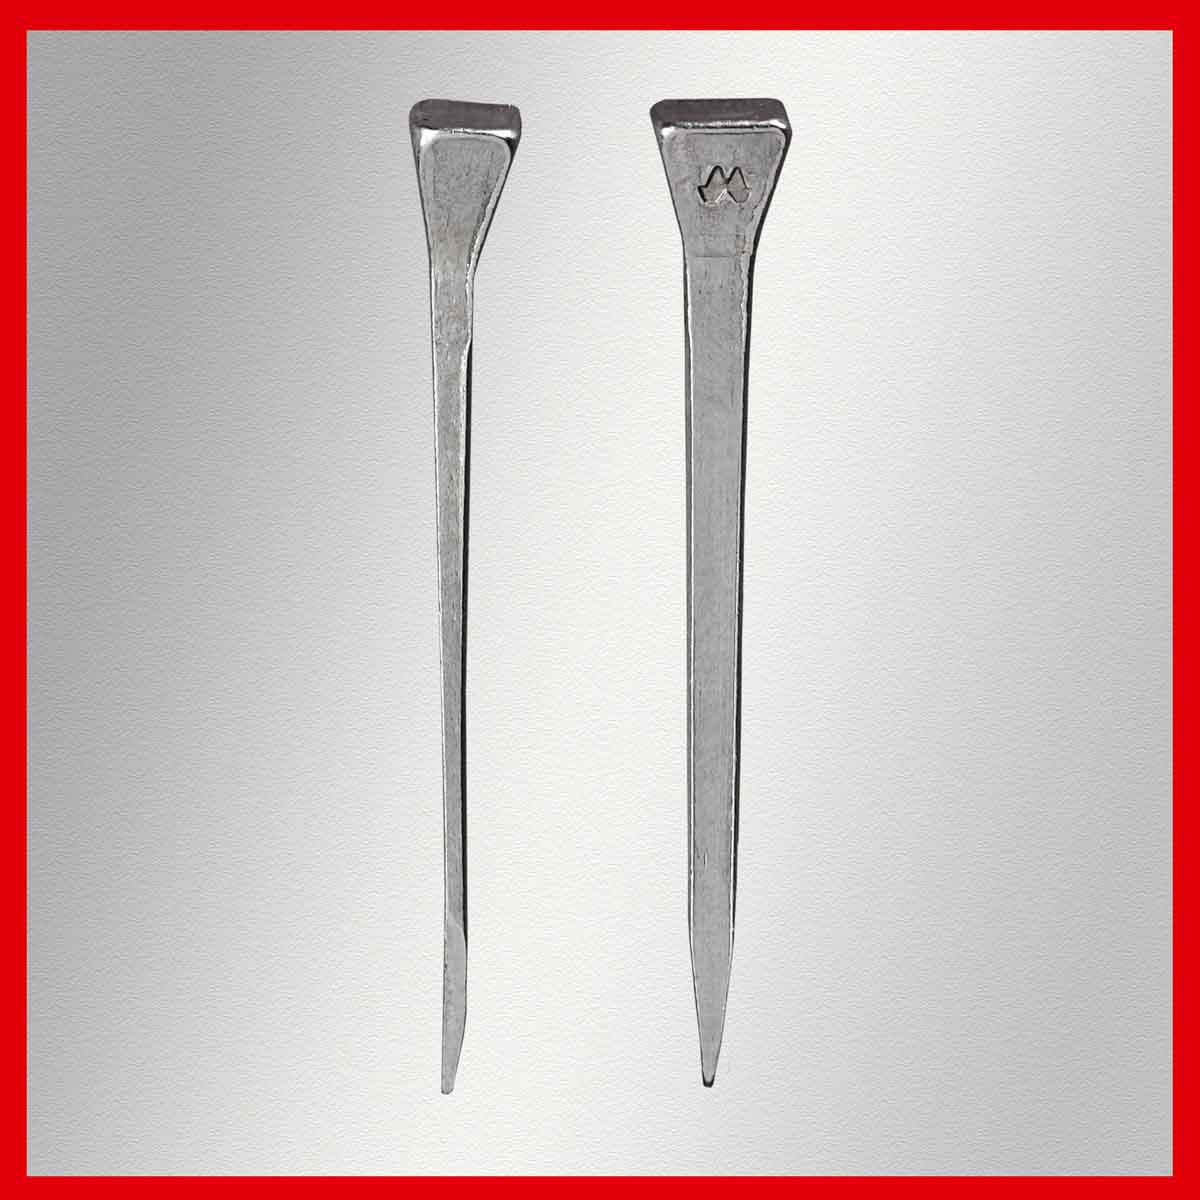 Mustad Concave Nail